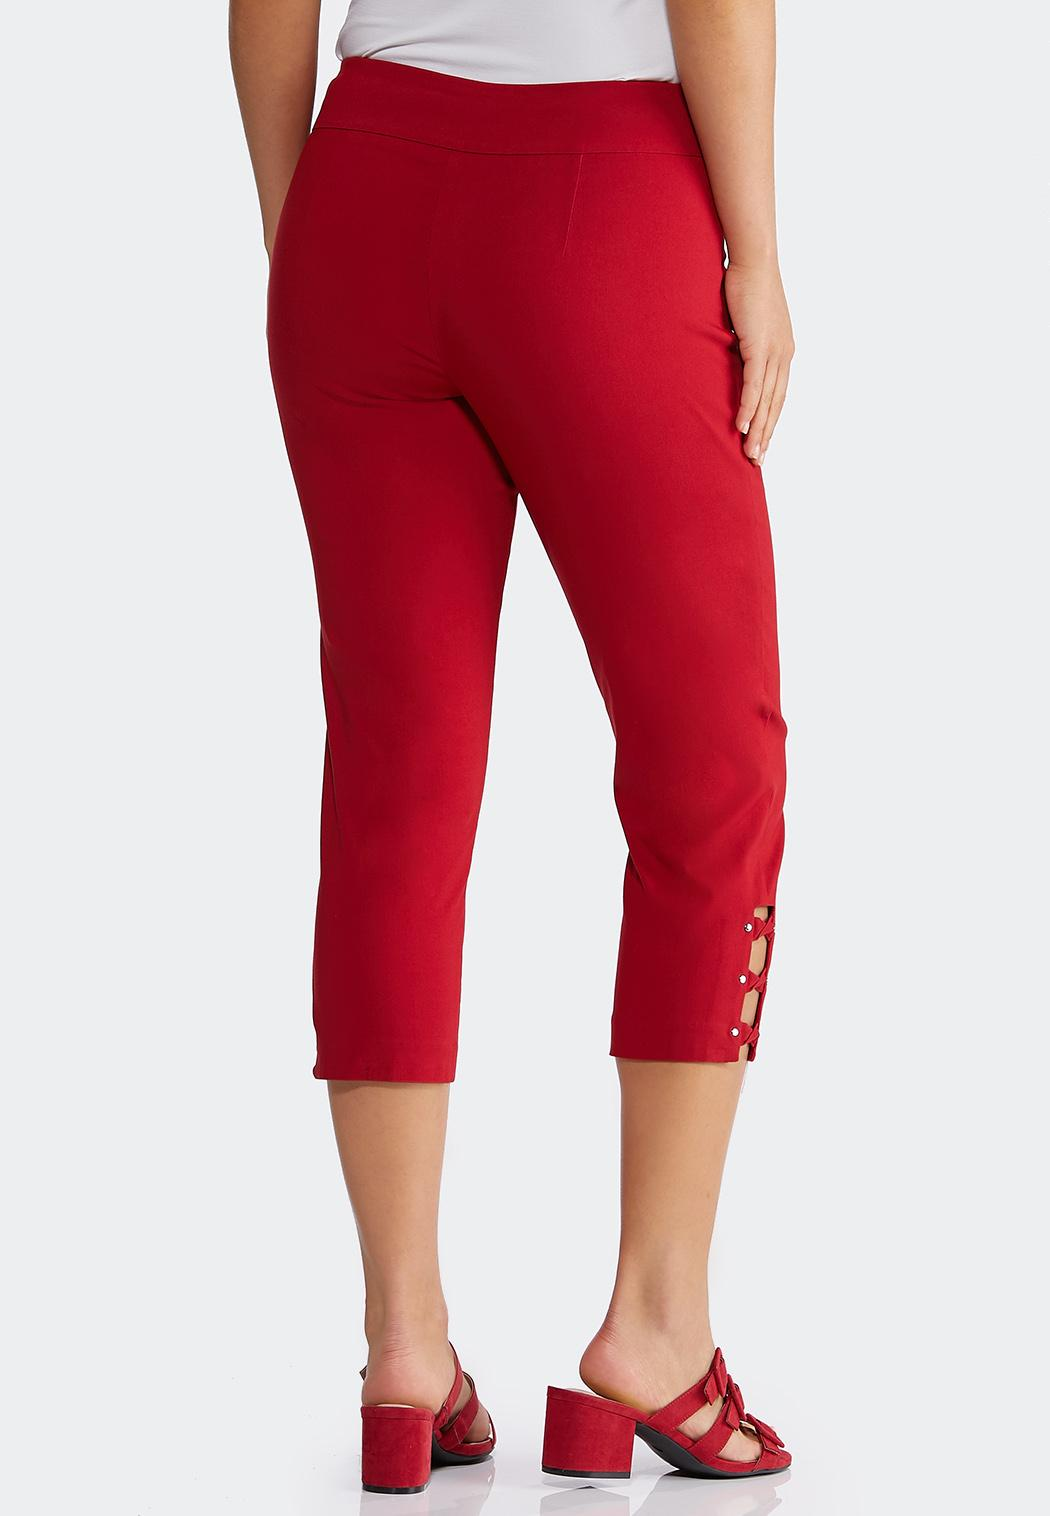 Cropped Red Lattice Pants (Item #44228814)